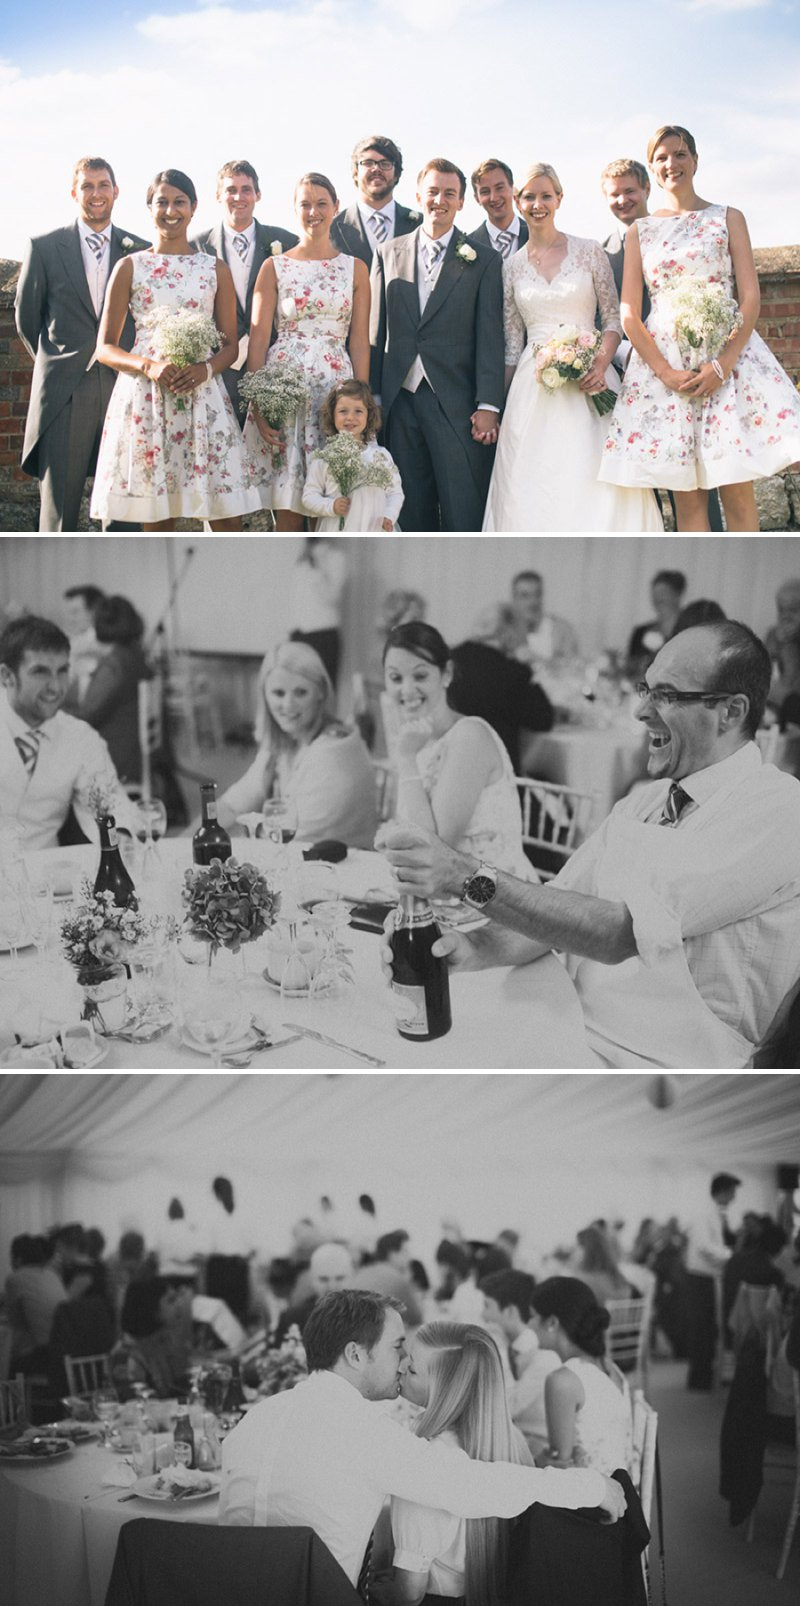 Rustic Wedding At Creslow Manor With Bride In Lace Paloma Blanca Gown With Groom In Morning Dress And Bridesmaids In Floral Print Dresses And Roses And Gypsophila In Bouquets Images By Joseph Hall 9